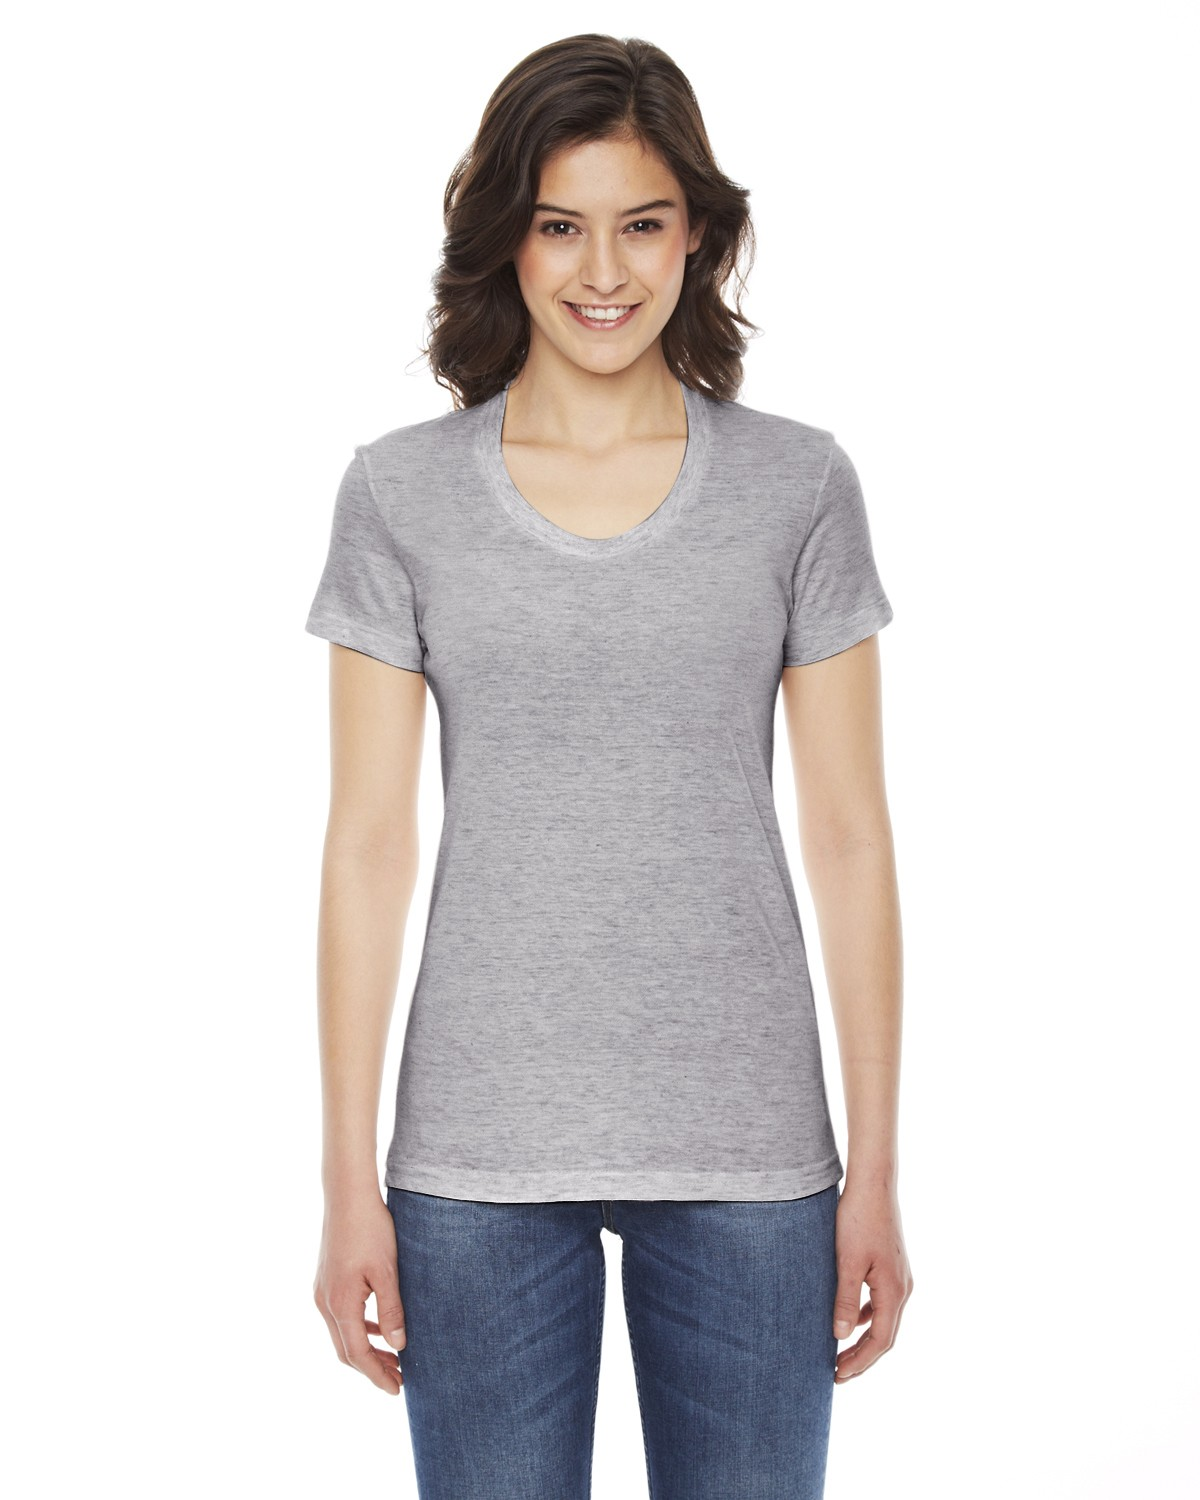 TR301W American Apparel ATHLETIC GREY